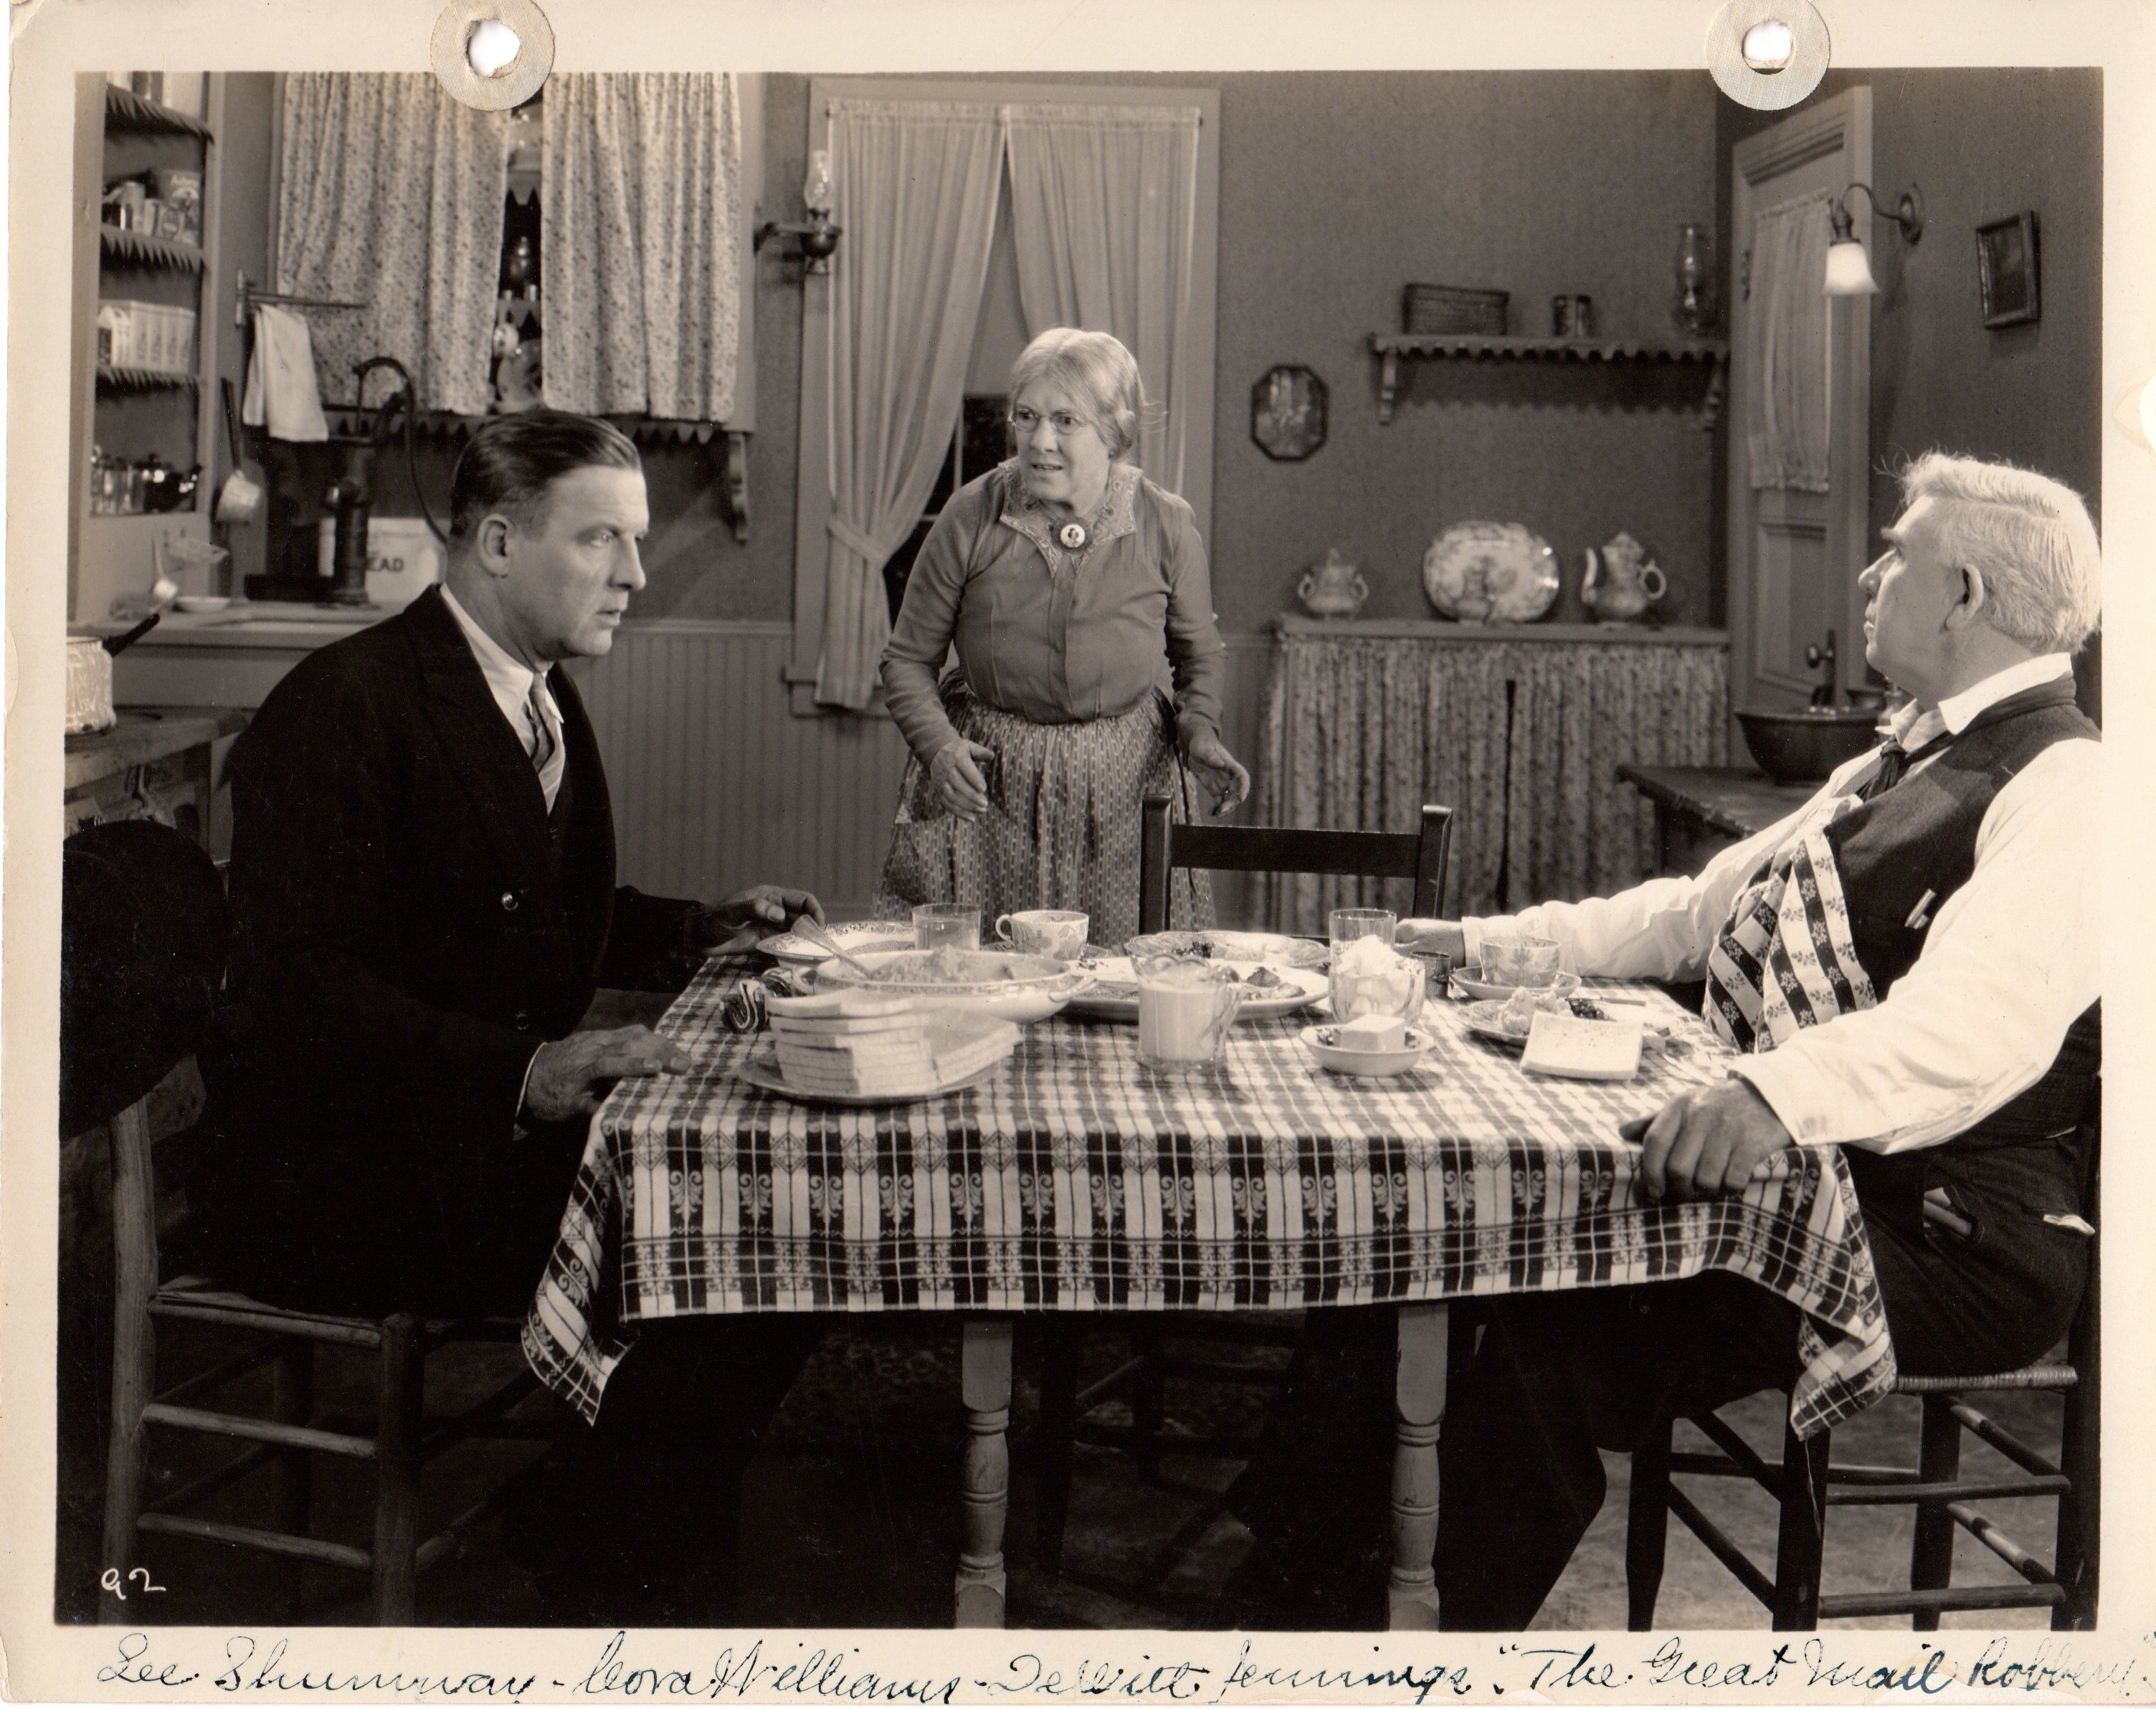 DeWitt Jennings, Lee Shumway, and Cora Williams in The Great Mail Robbery (1927)